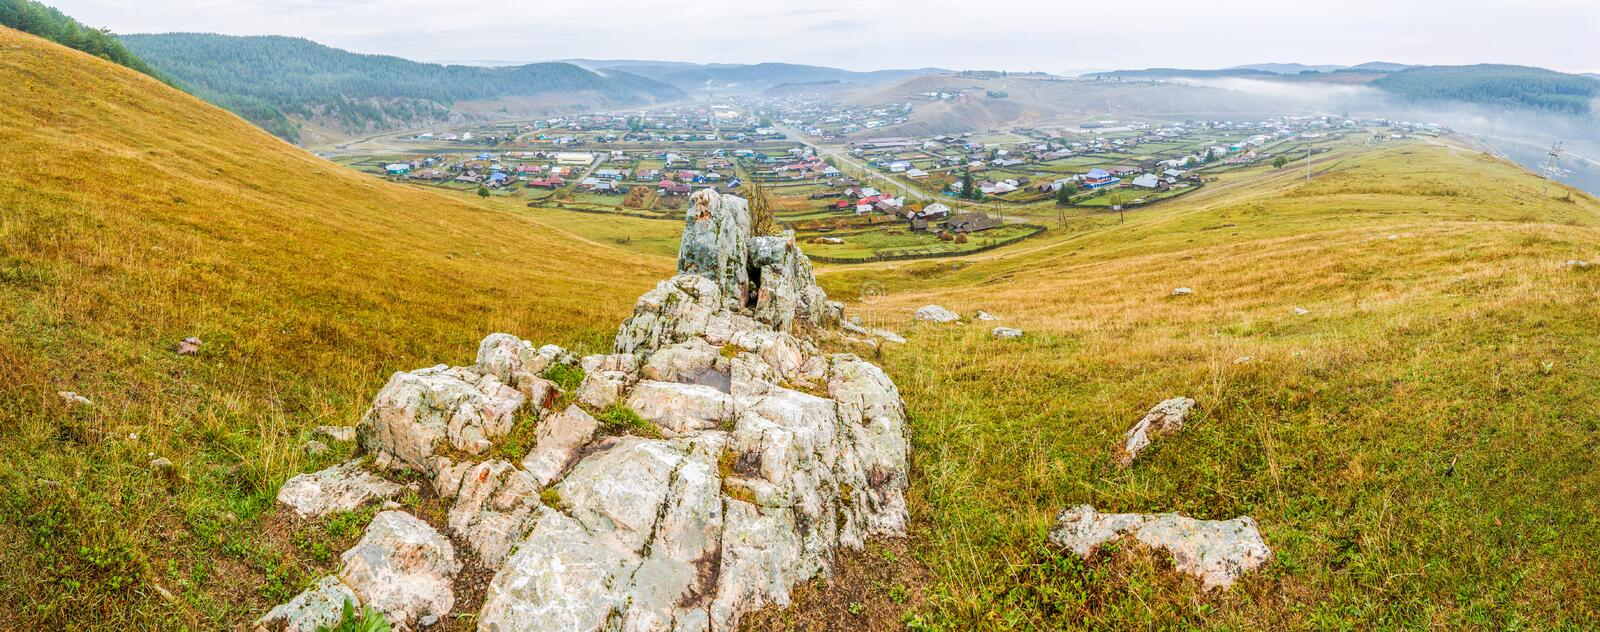 The Ural village in the mountains. Kaga. Bashkortostan. Picturesque Ural sights. The Ural village in the mountains. Kaga. Bashkortostan stock image